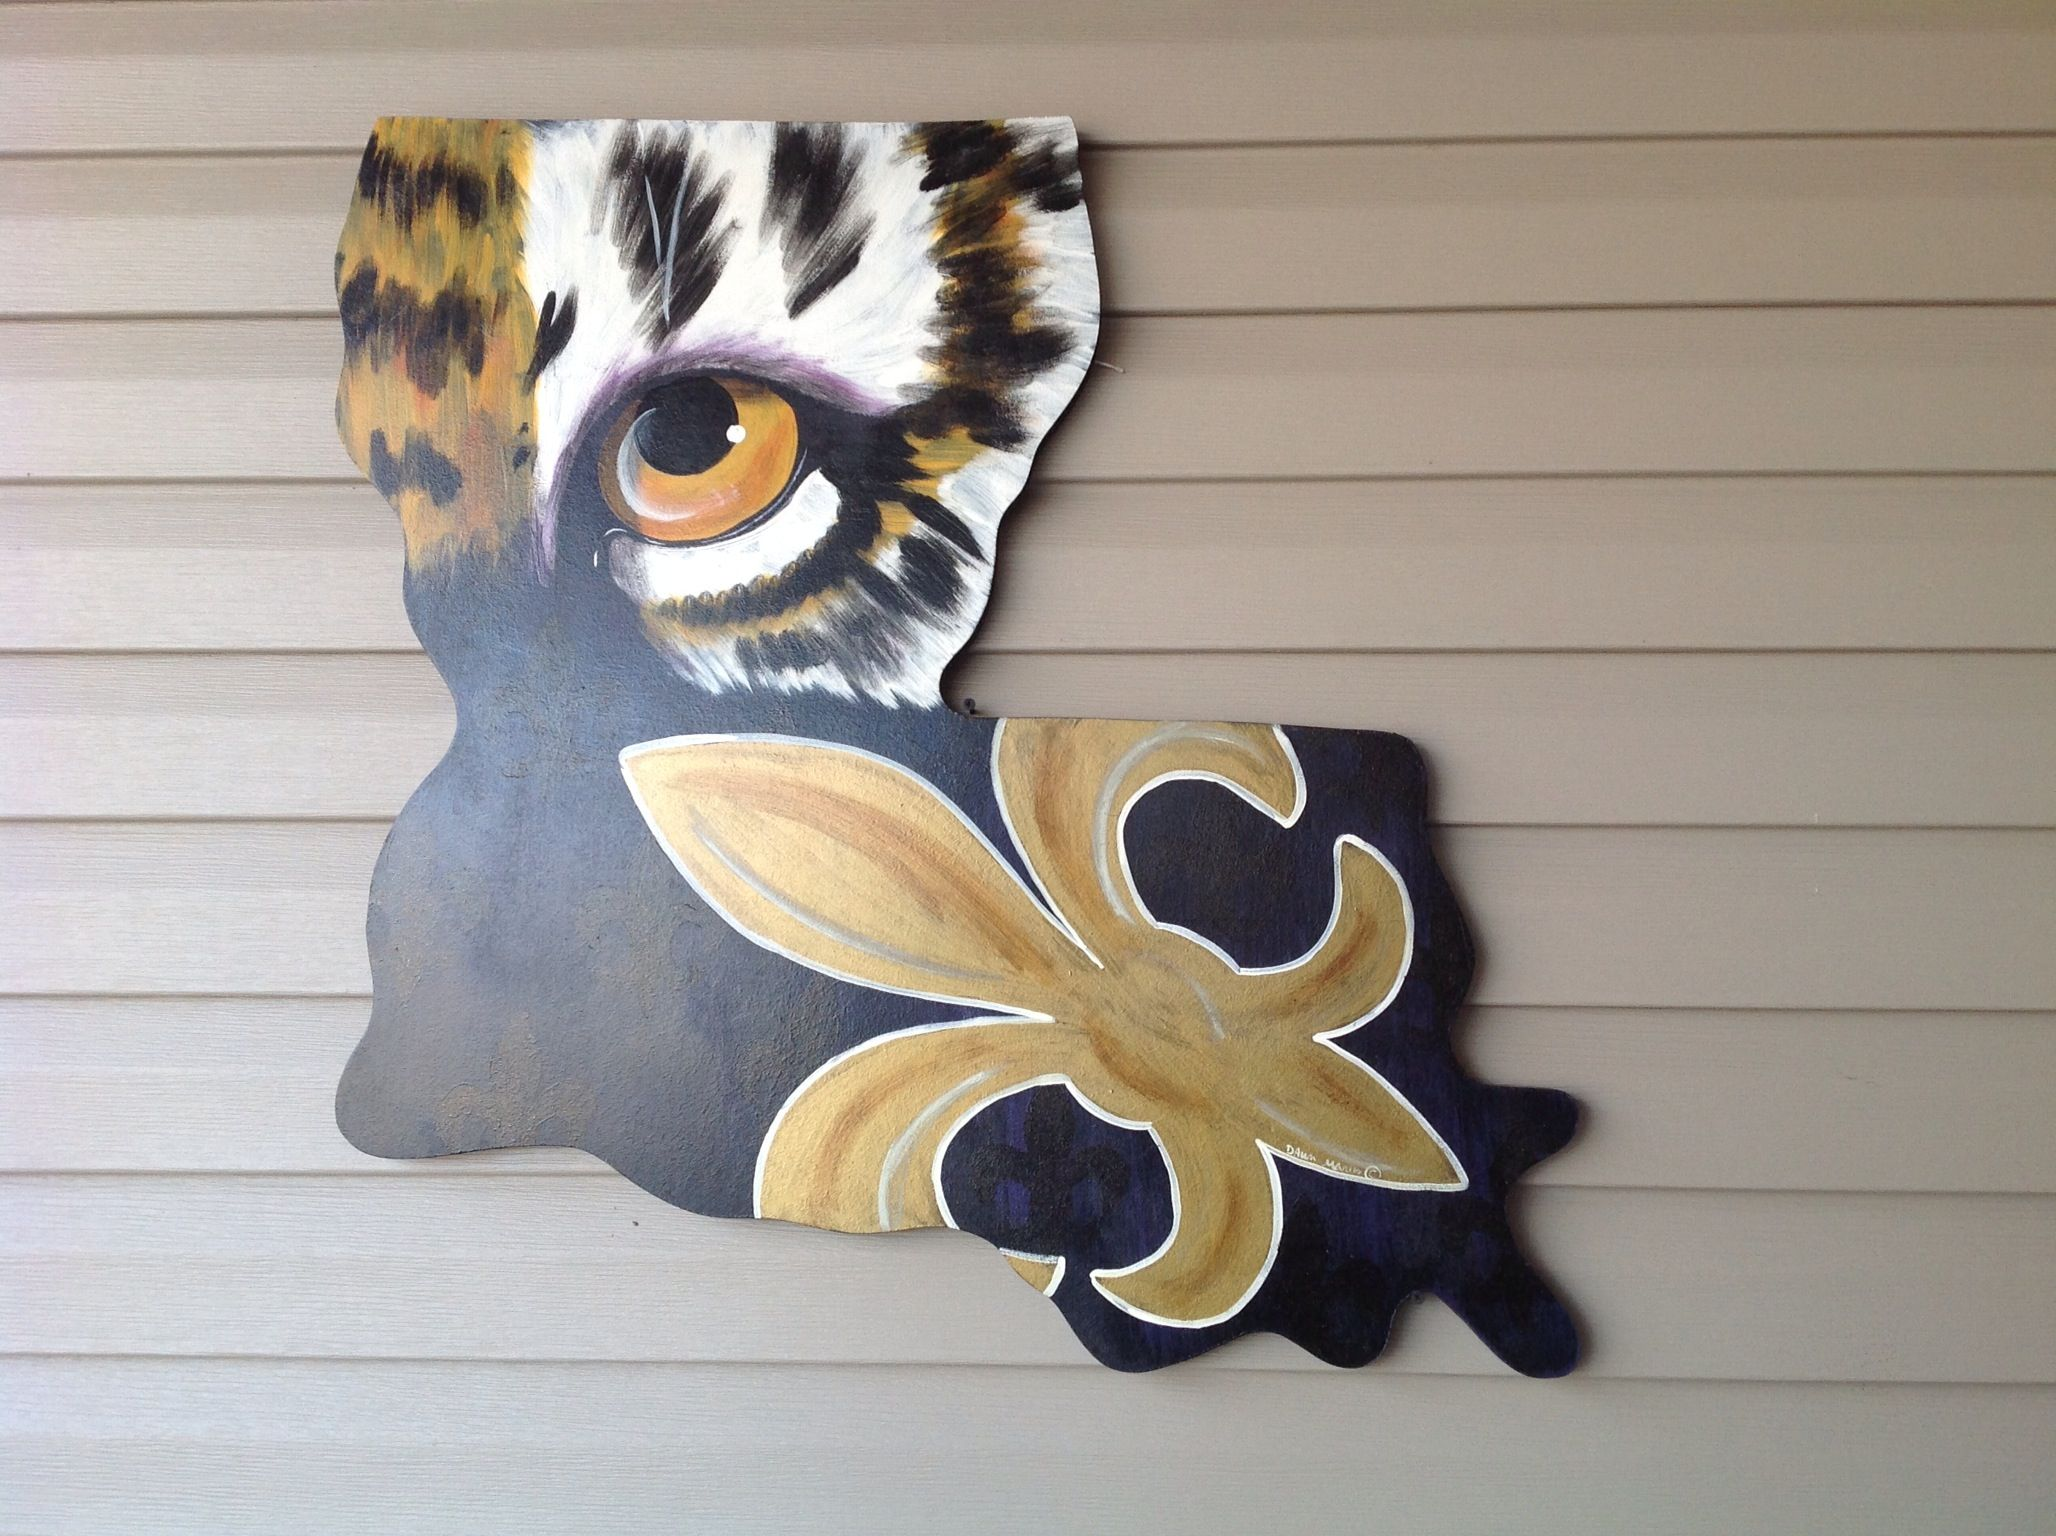 Louisiana Saints And Lsu Painted Wall Hanging Sprayed With Polyurethane To Protect Geaux Saints Tigers Football Canvas Louisiana Art Painting Art Projects